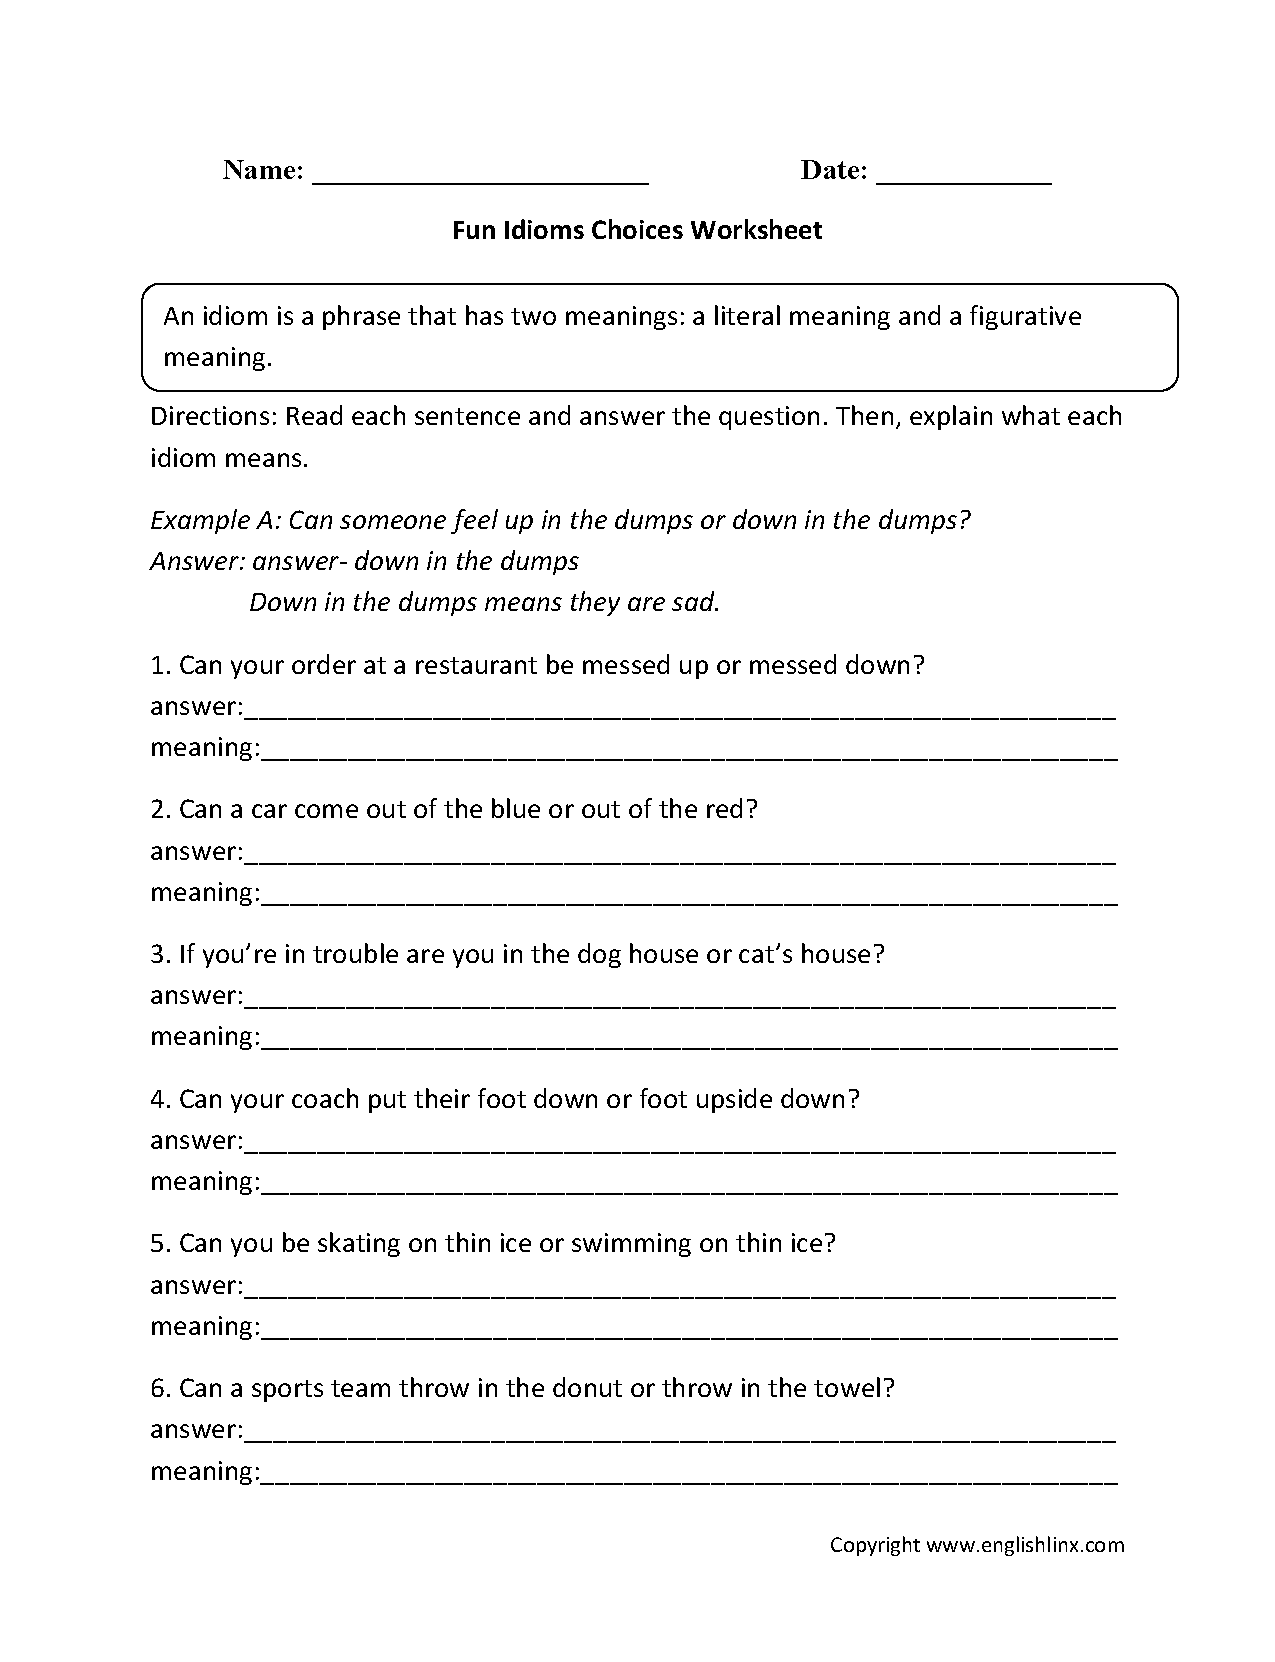 Fun Idioms Choices Worksheets Education